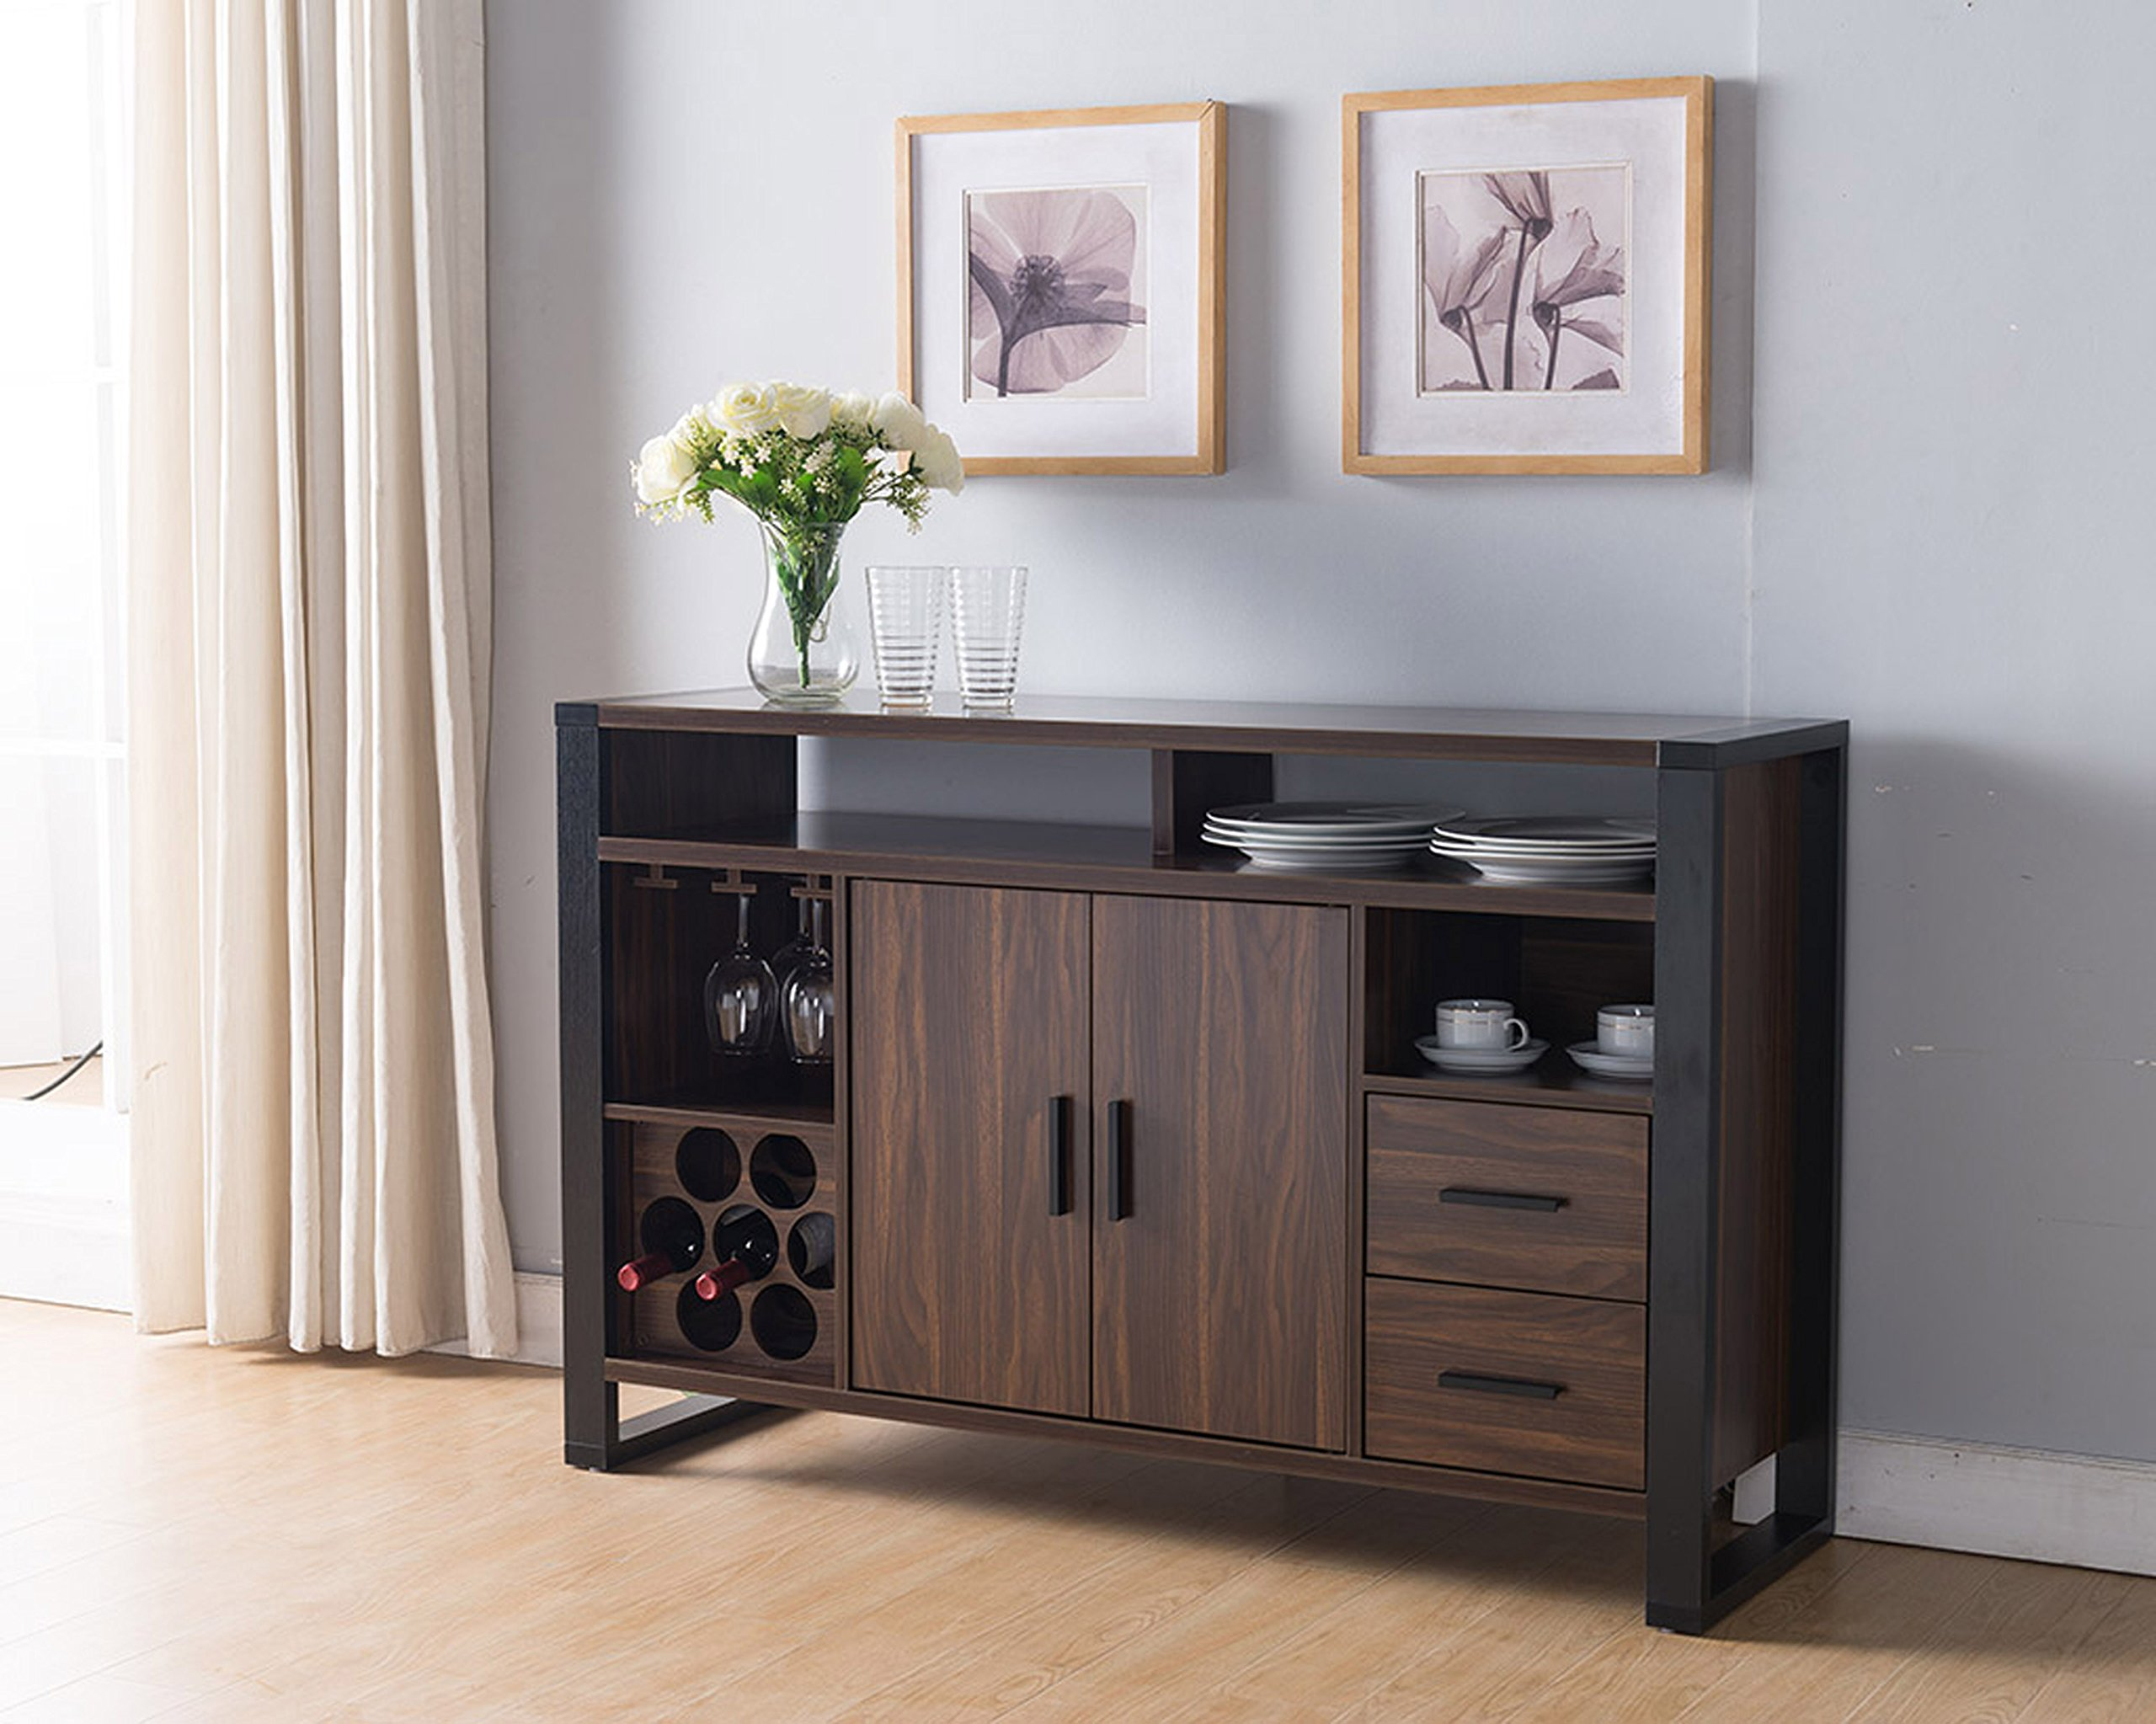 Astounding Cheap Walnut Buffet Sideboard Find Walnut Buffet Sideboard Download Free Architecture Designs Sospemadebymaigaardcom